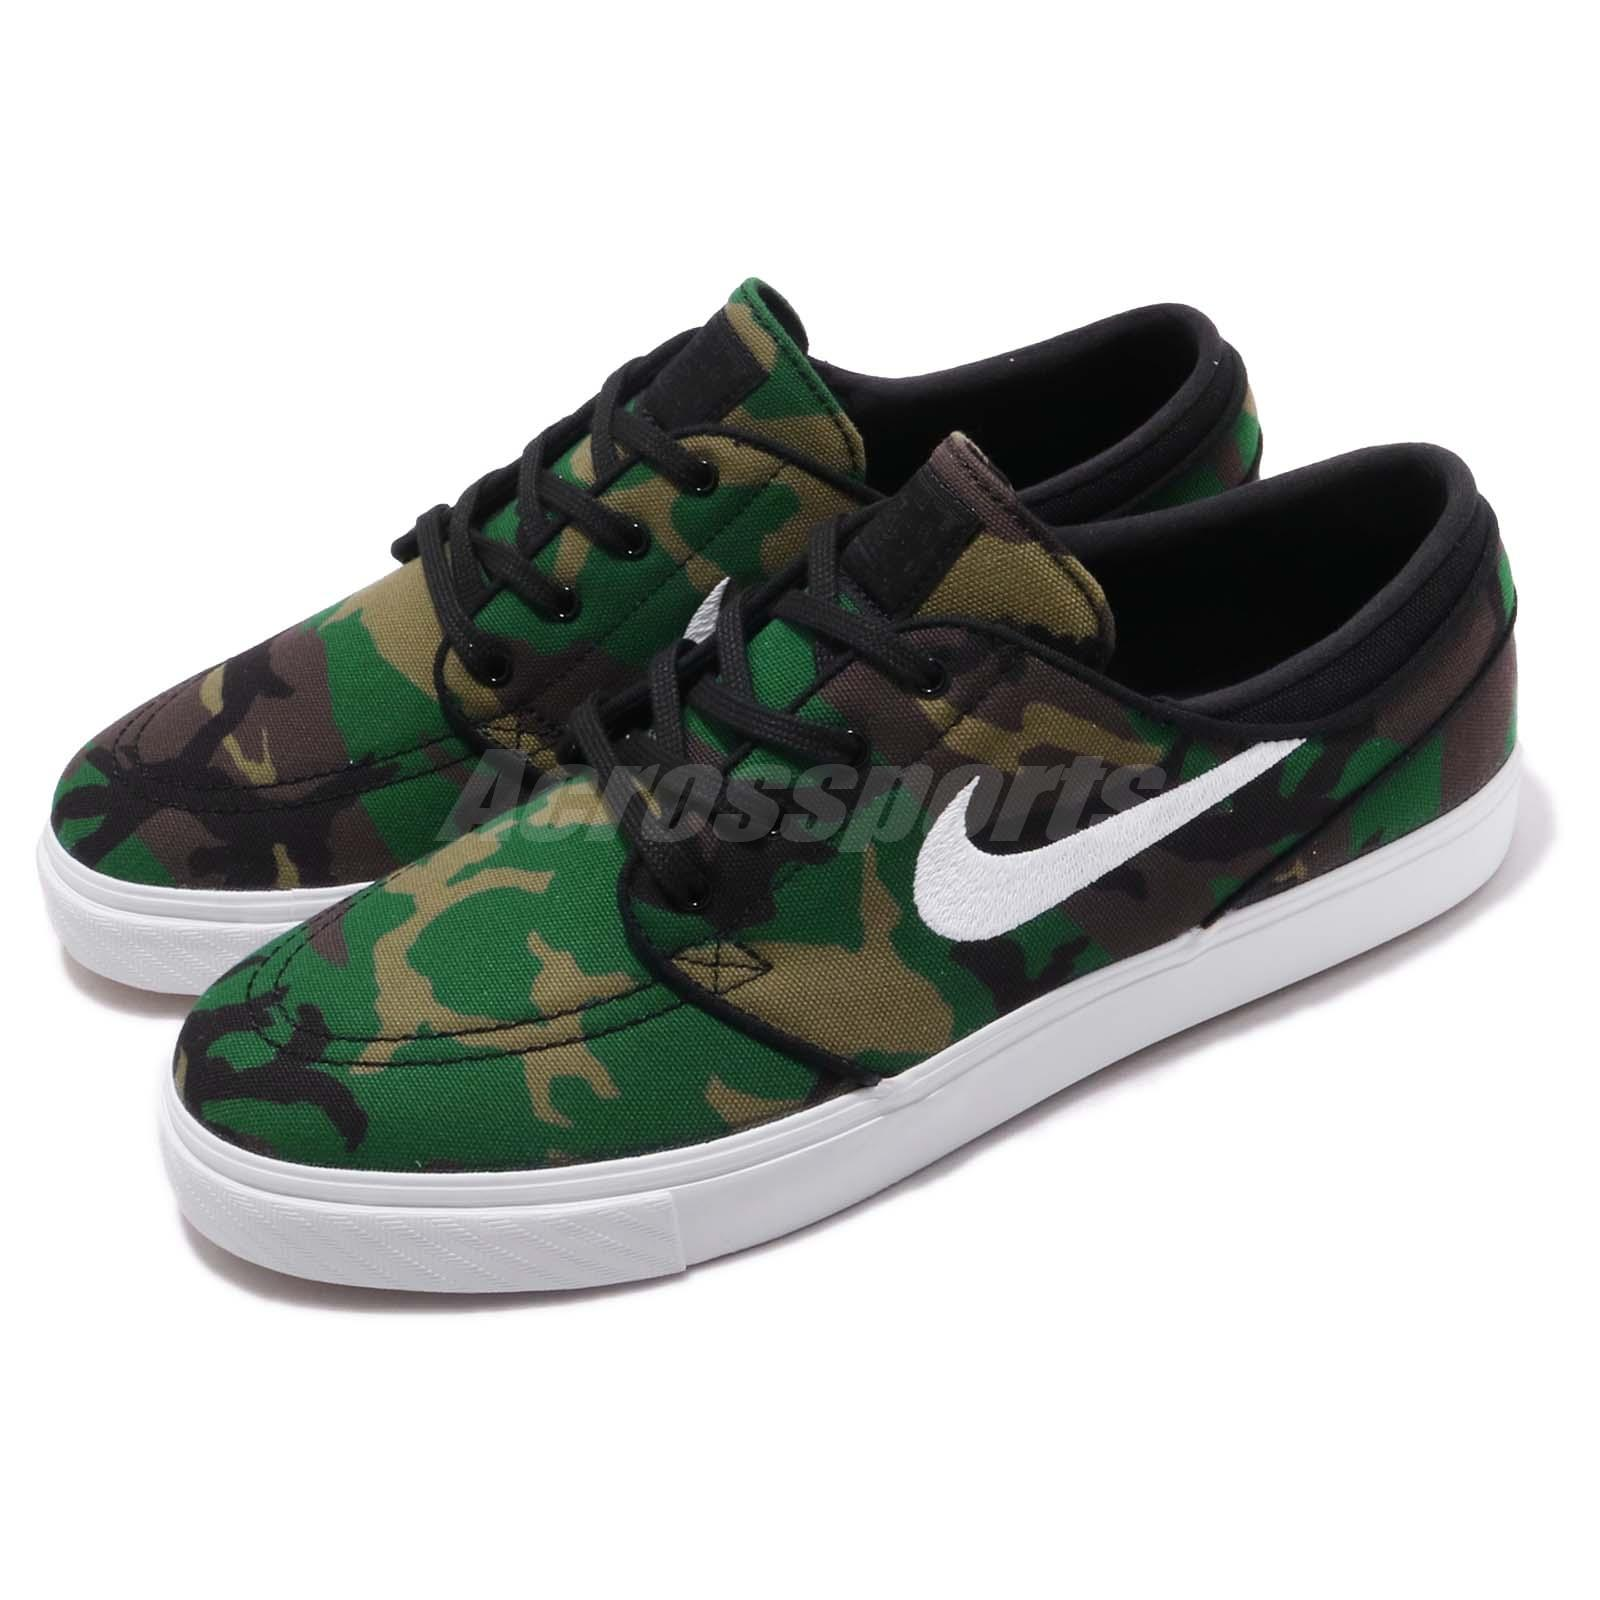 a420f96262ce9 Details about Nike SB Zoom Stefan Janoski CNVS Canvas Camo Mens  Skateboarding Shoes 615957-901